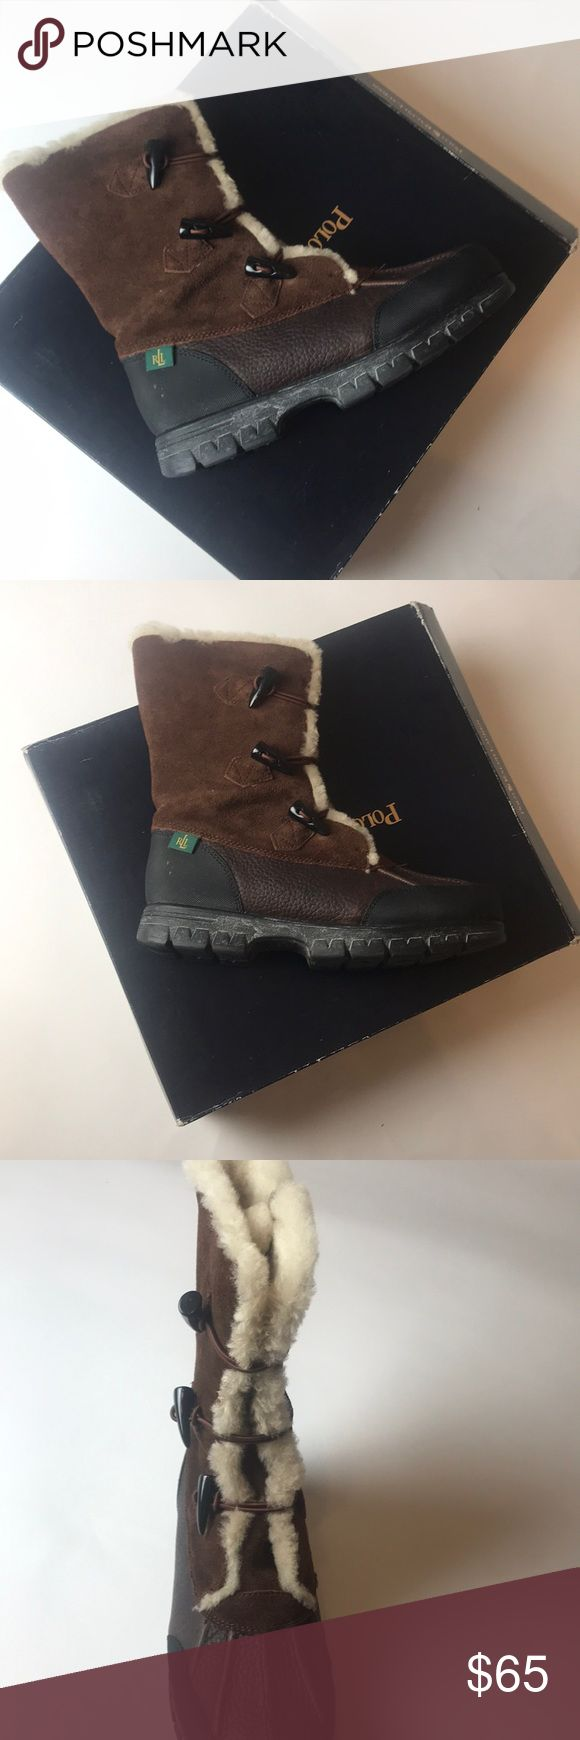 Ralph Lauren Polo Boots Brown and black fur polo boots with original box   Suede and leather!   Size: 7.5 Men's Polo by Ralph Lauren Shoes Winter & Rain Boots